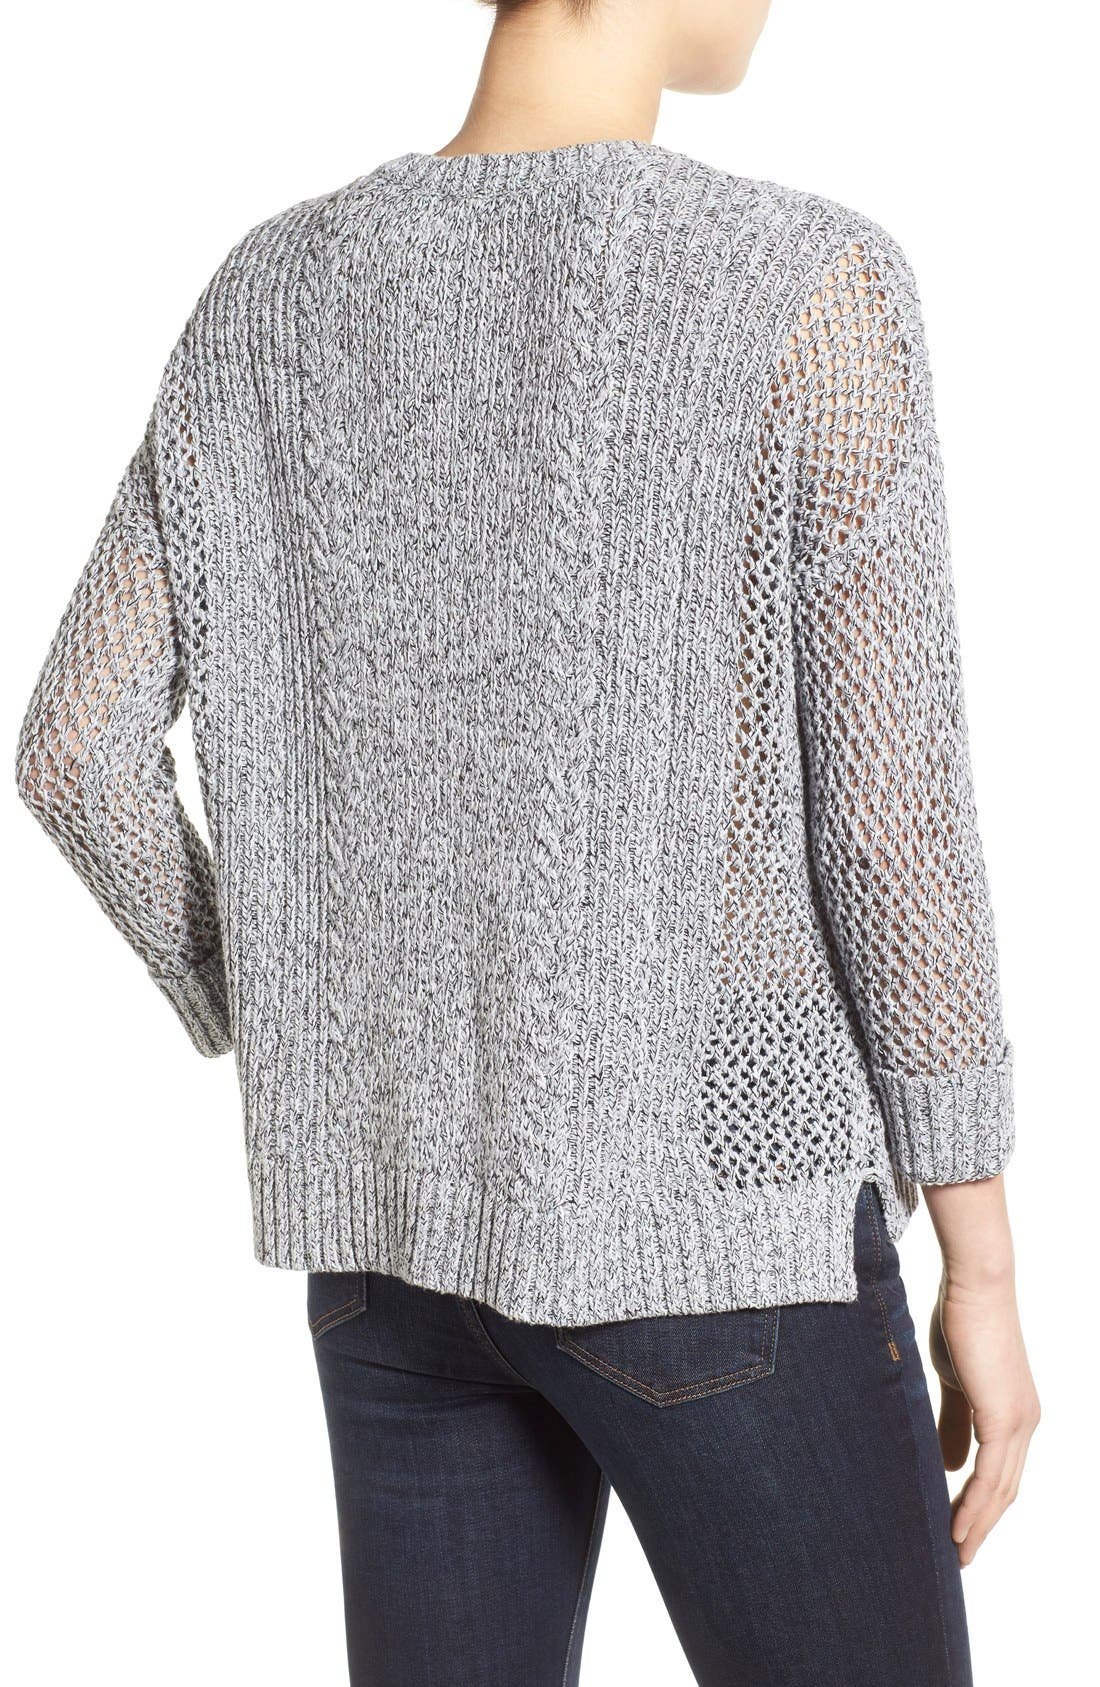 Alternate Image 2  - Madewell 'Karlie' Cable Knit Sweater